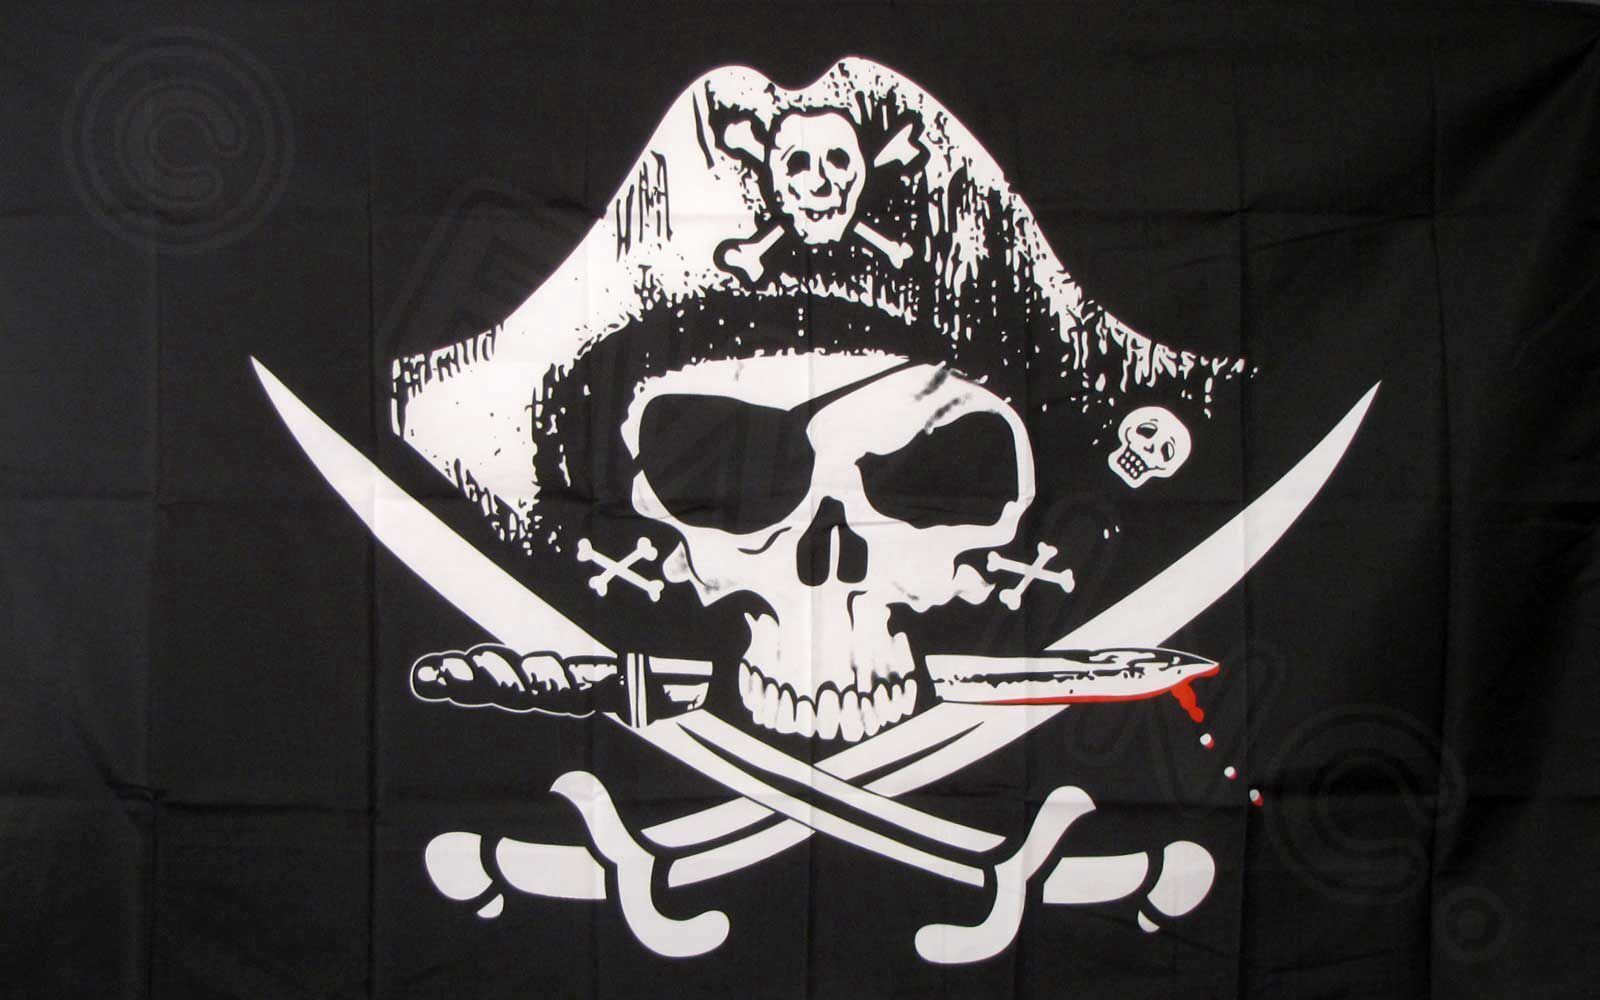 Dead Man's Chest Pirate Flag 3x5 ft Jolly Roger Sabers Sword